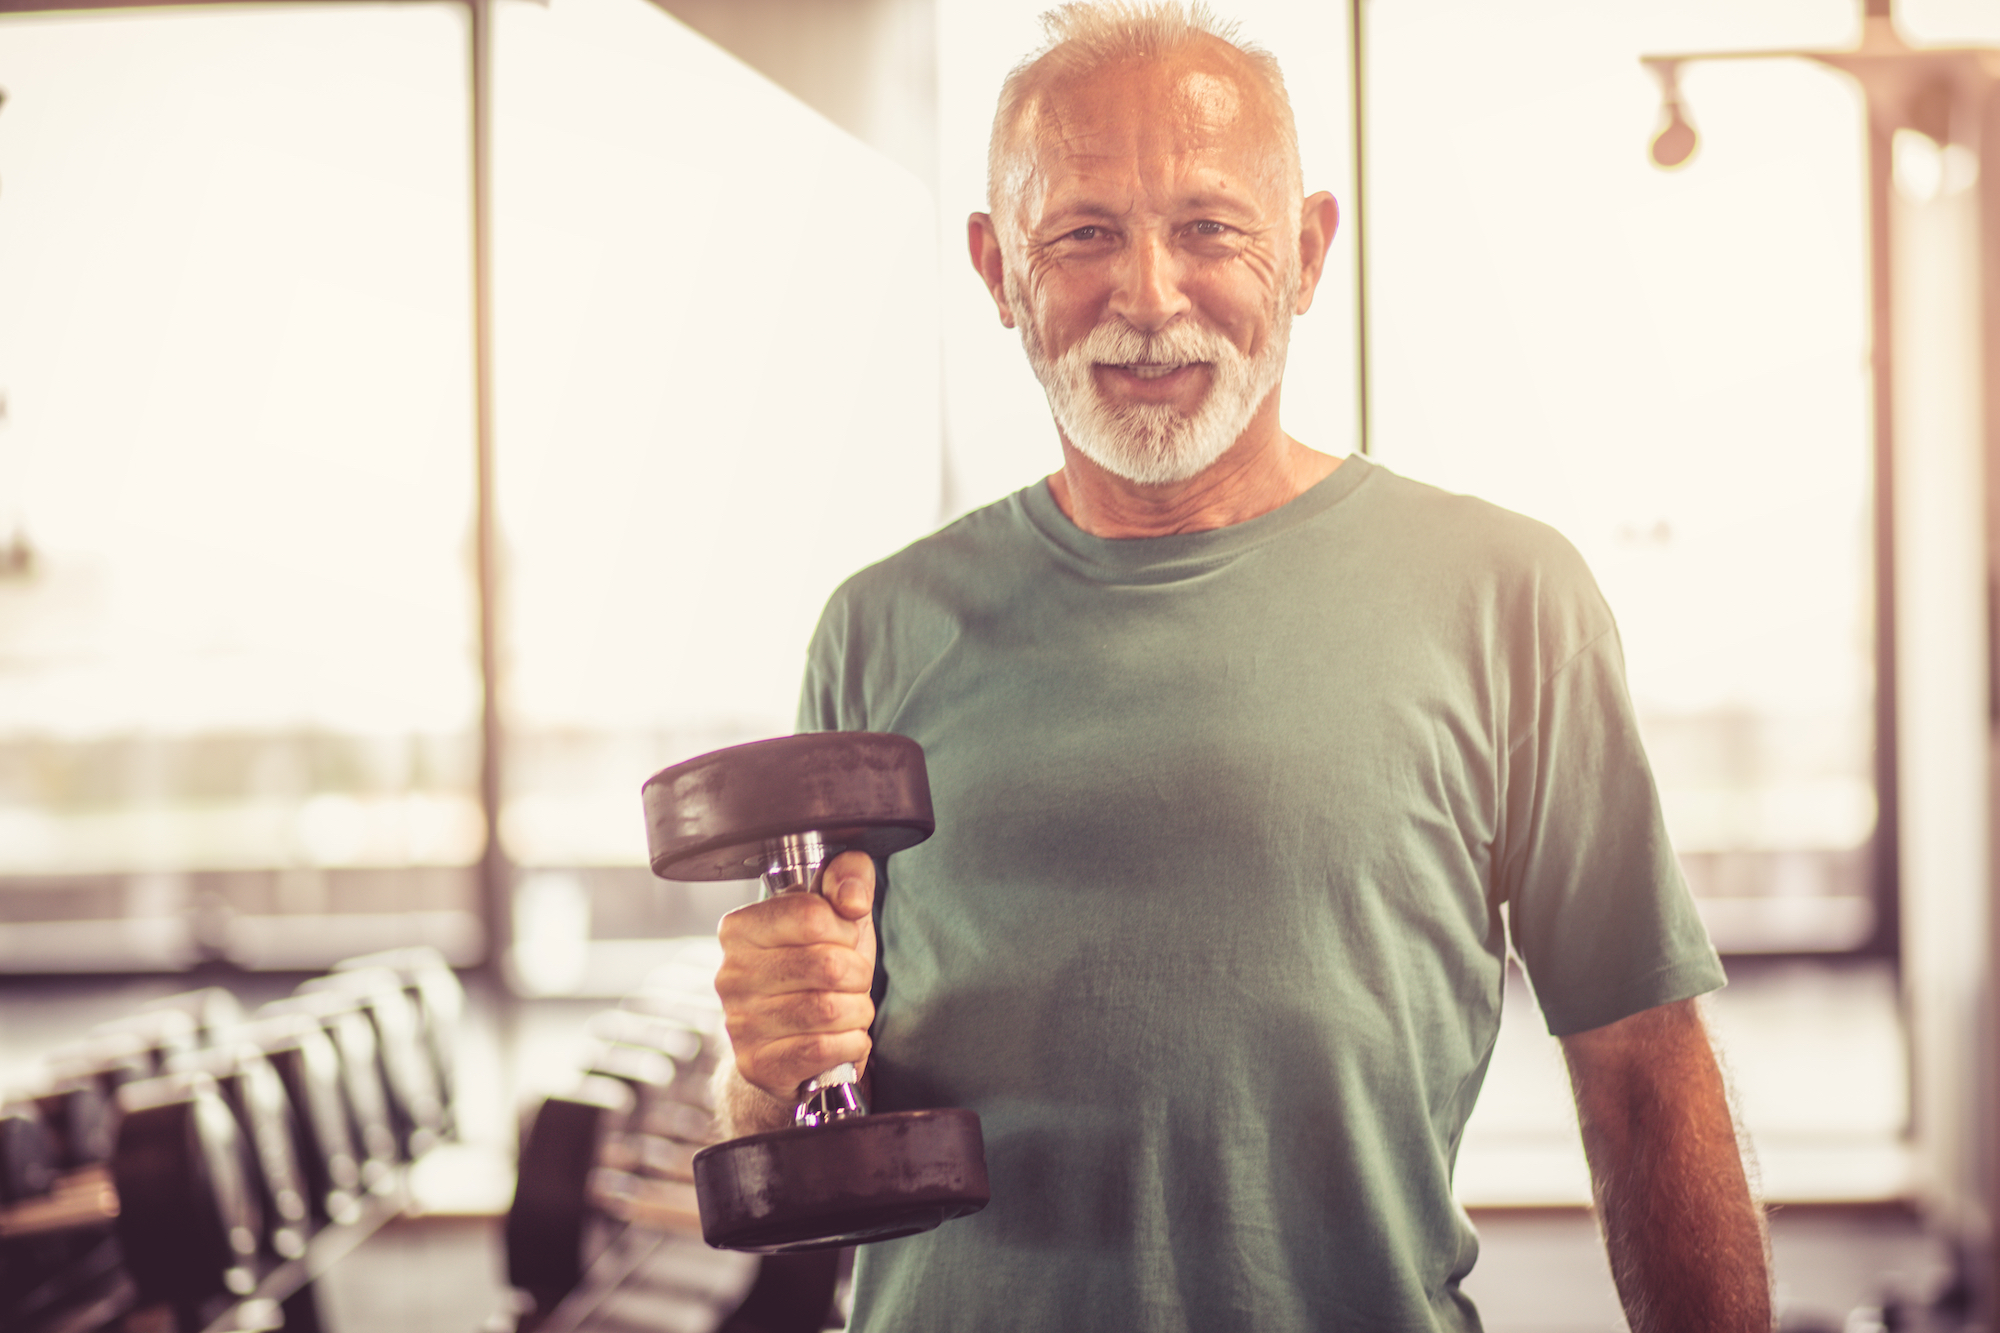 white haired man with beard lifing a dumbell at a gym